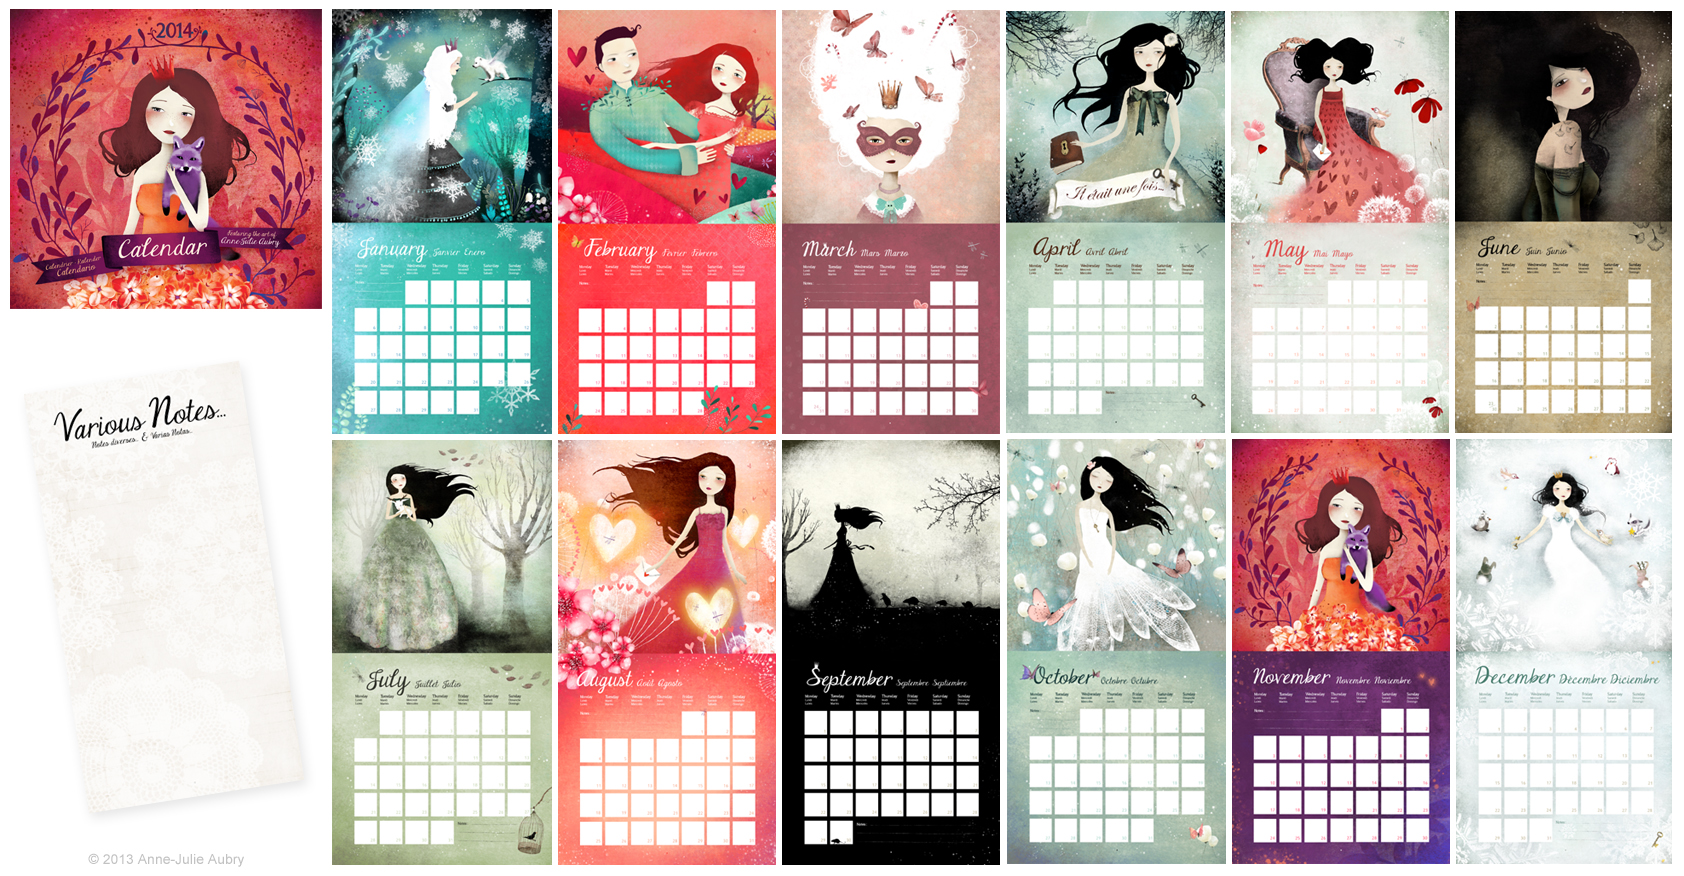 2014 Calendar from artist Anne-Julie Aubry - available at https://www.etsy.com/shop/TheNebulousKingdom